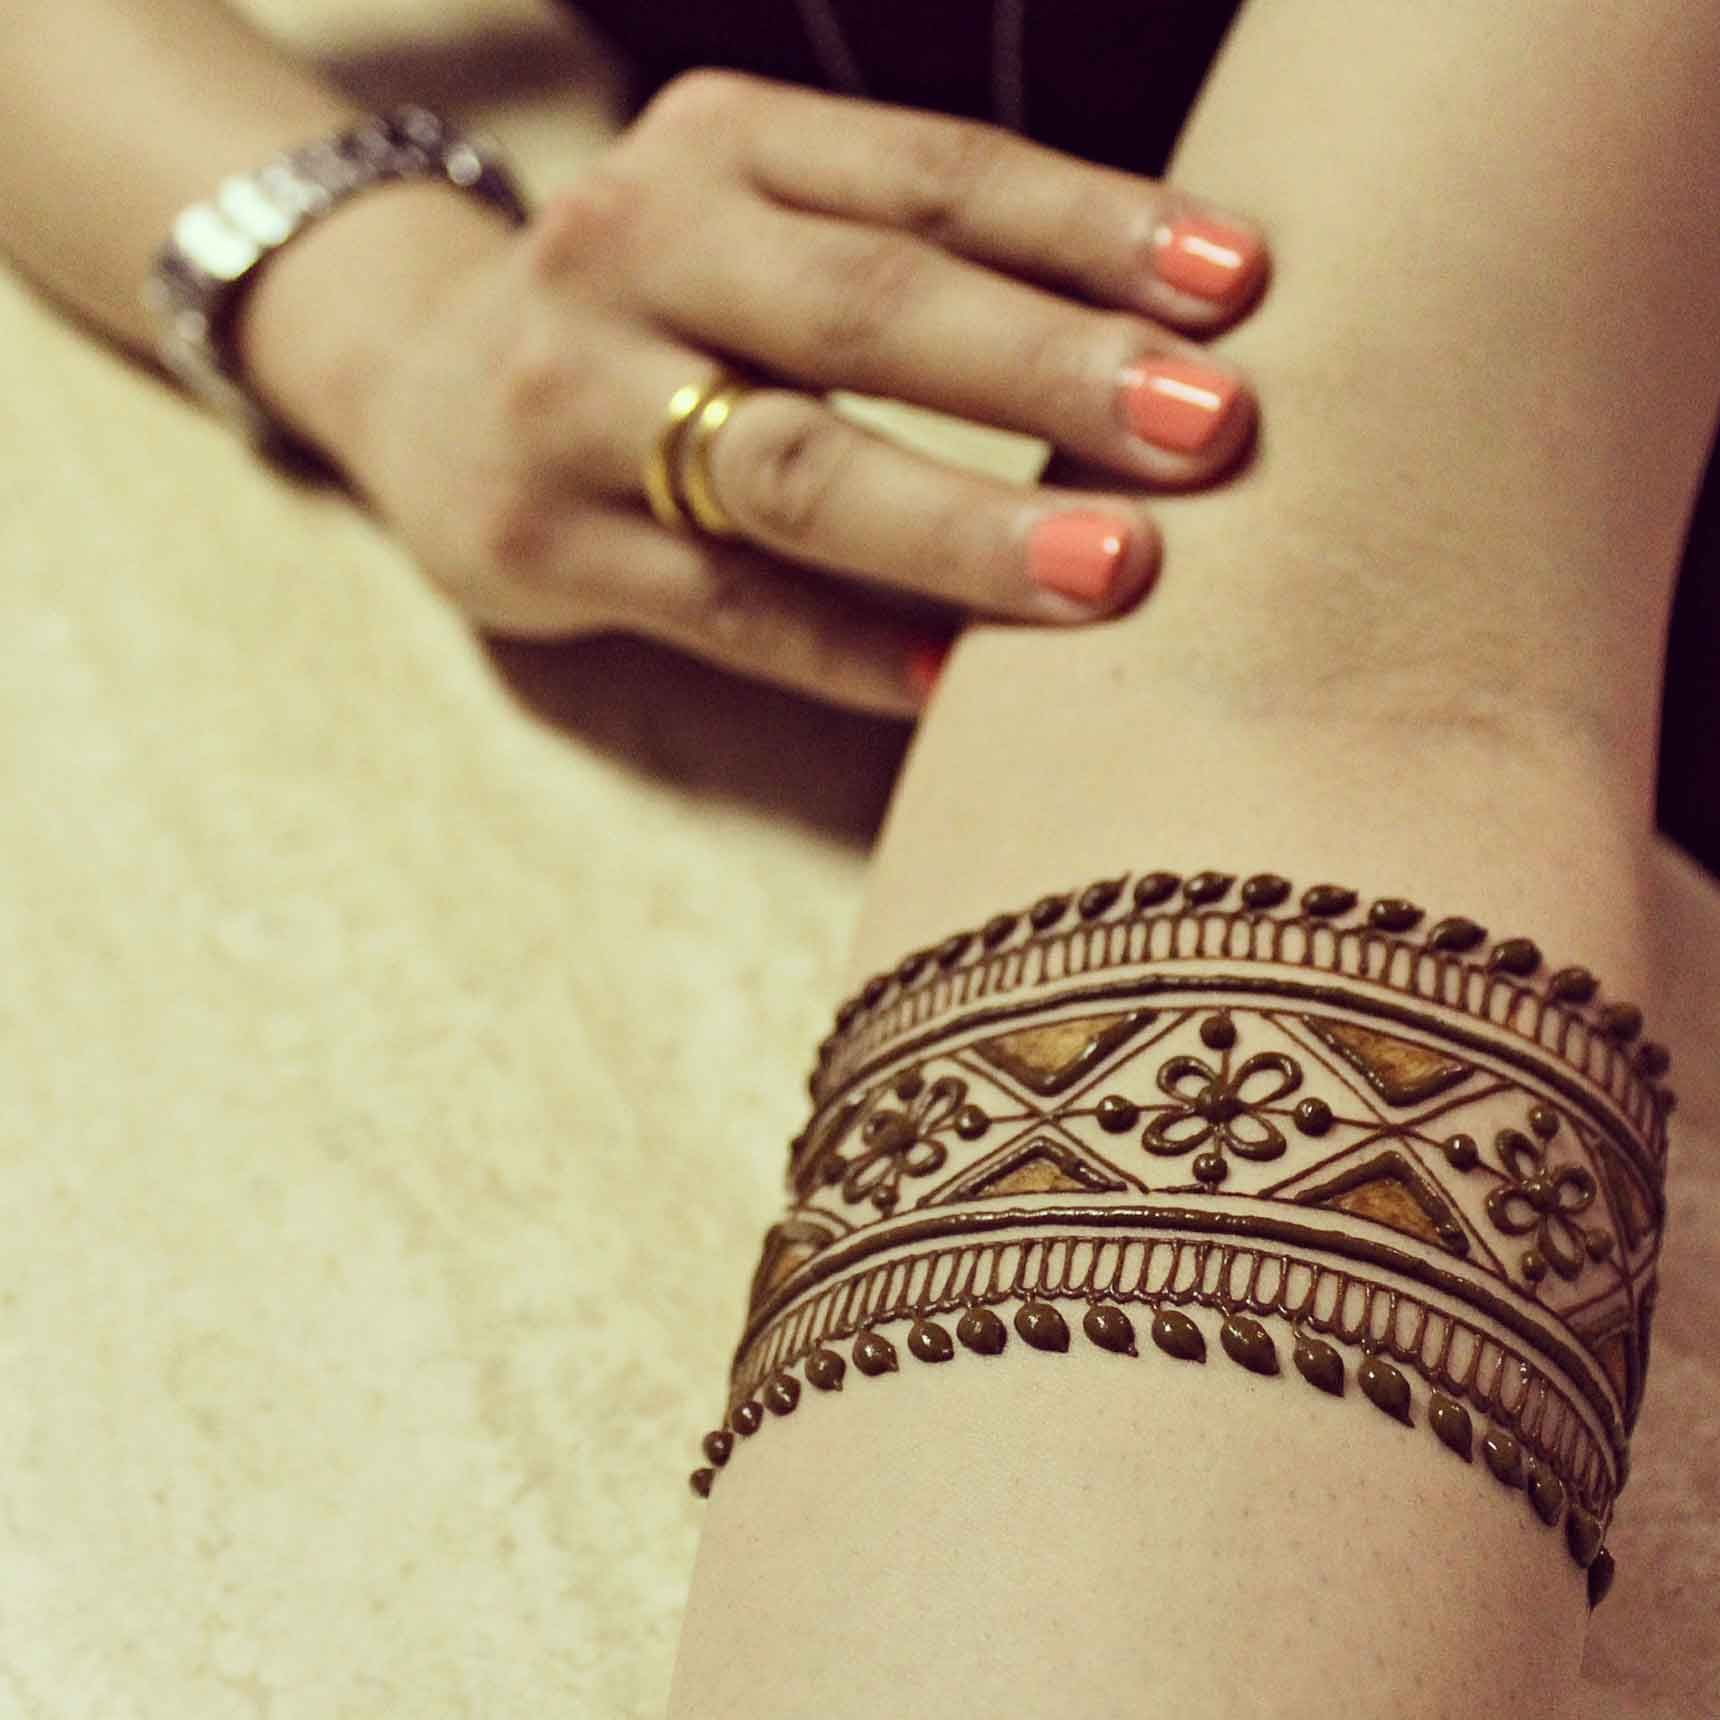 Pin mehndi and bangles display pics awesome dp wallpaper on pinterest - This Mehndi Pic Is Awesome